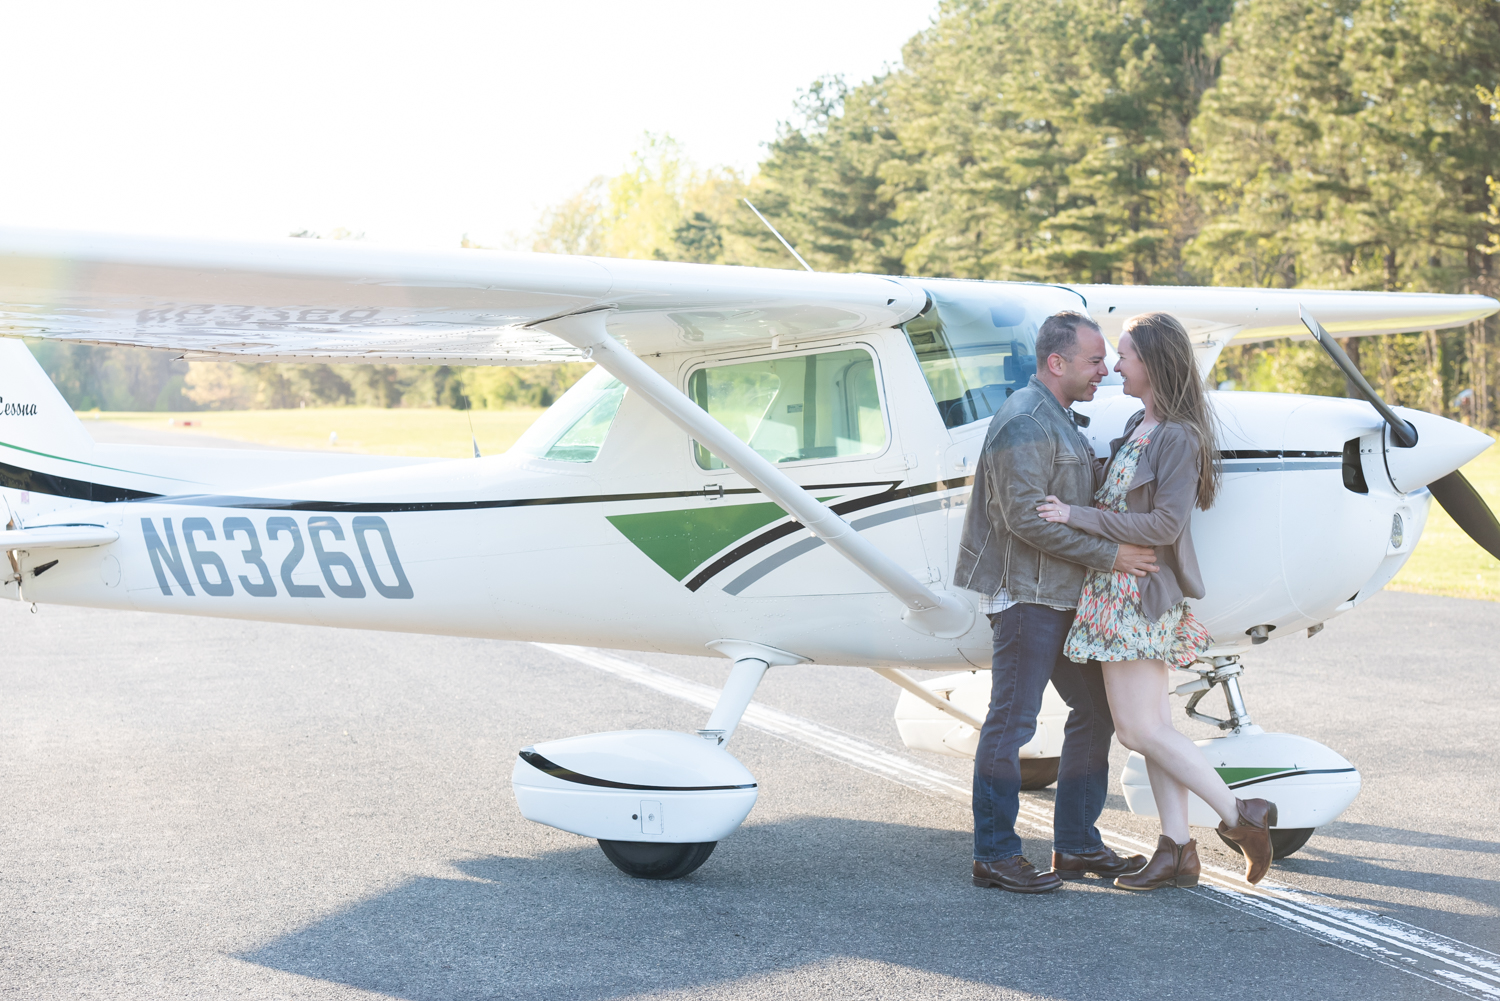 Seahorse Beach & CRE Airport Engagement Session